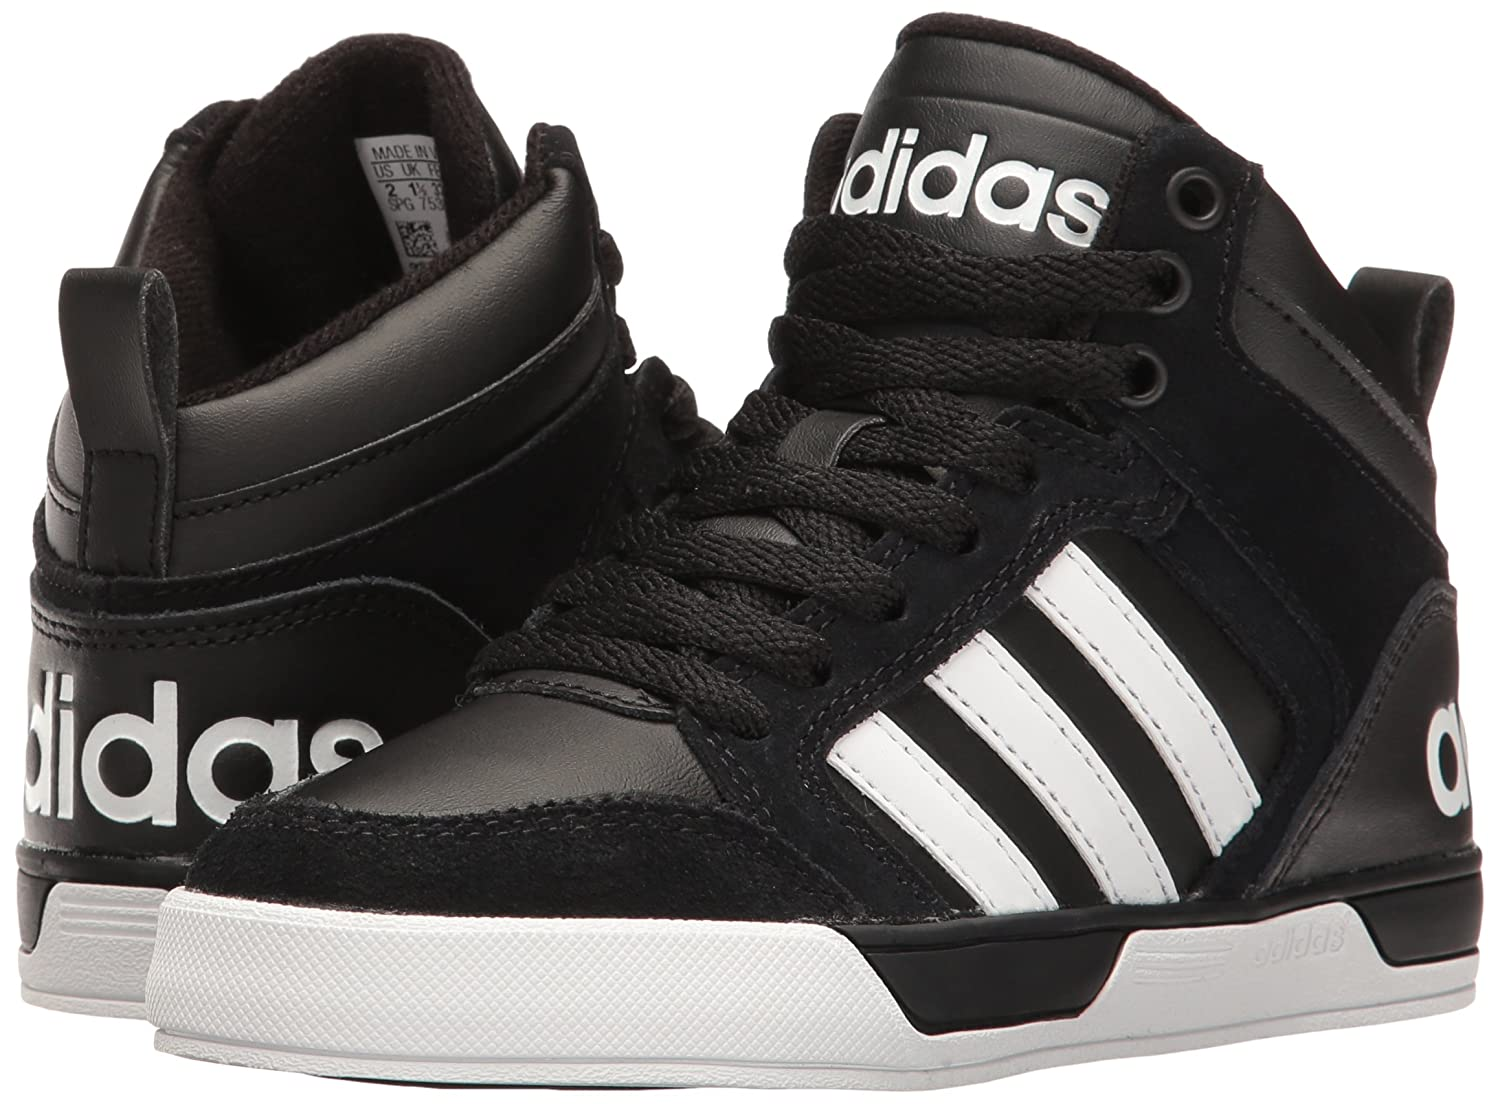 adidas Neo Kids' Sneaker Raleigh 9TIS Mid K Sneaker Kids' B01GV1642Y 2.5 Little Kid M|Black/White 7a9169